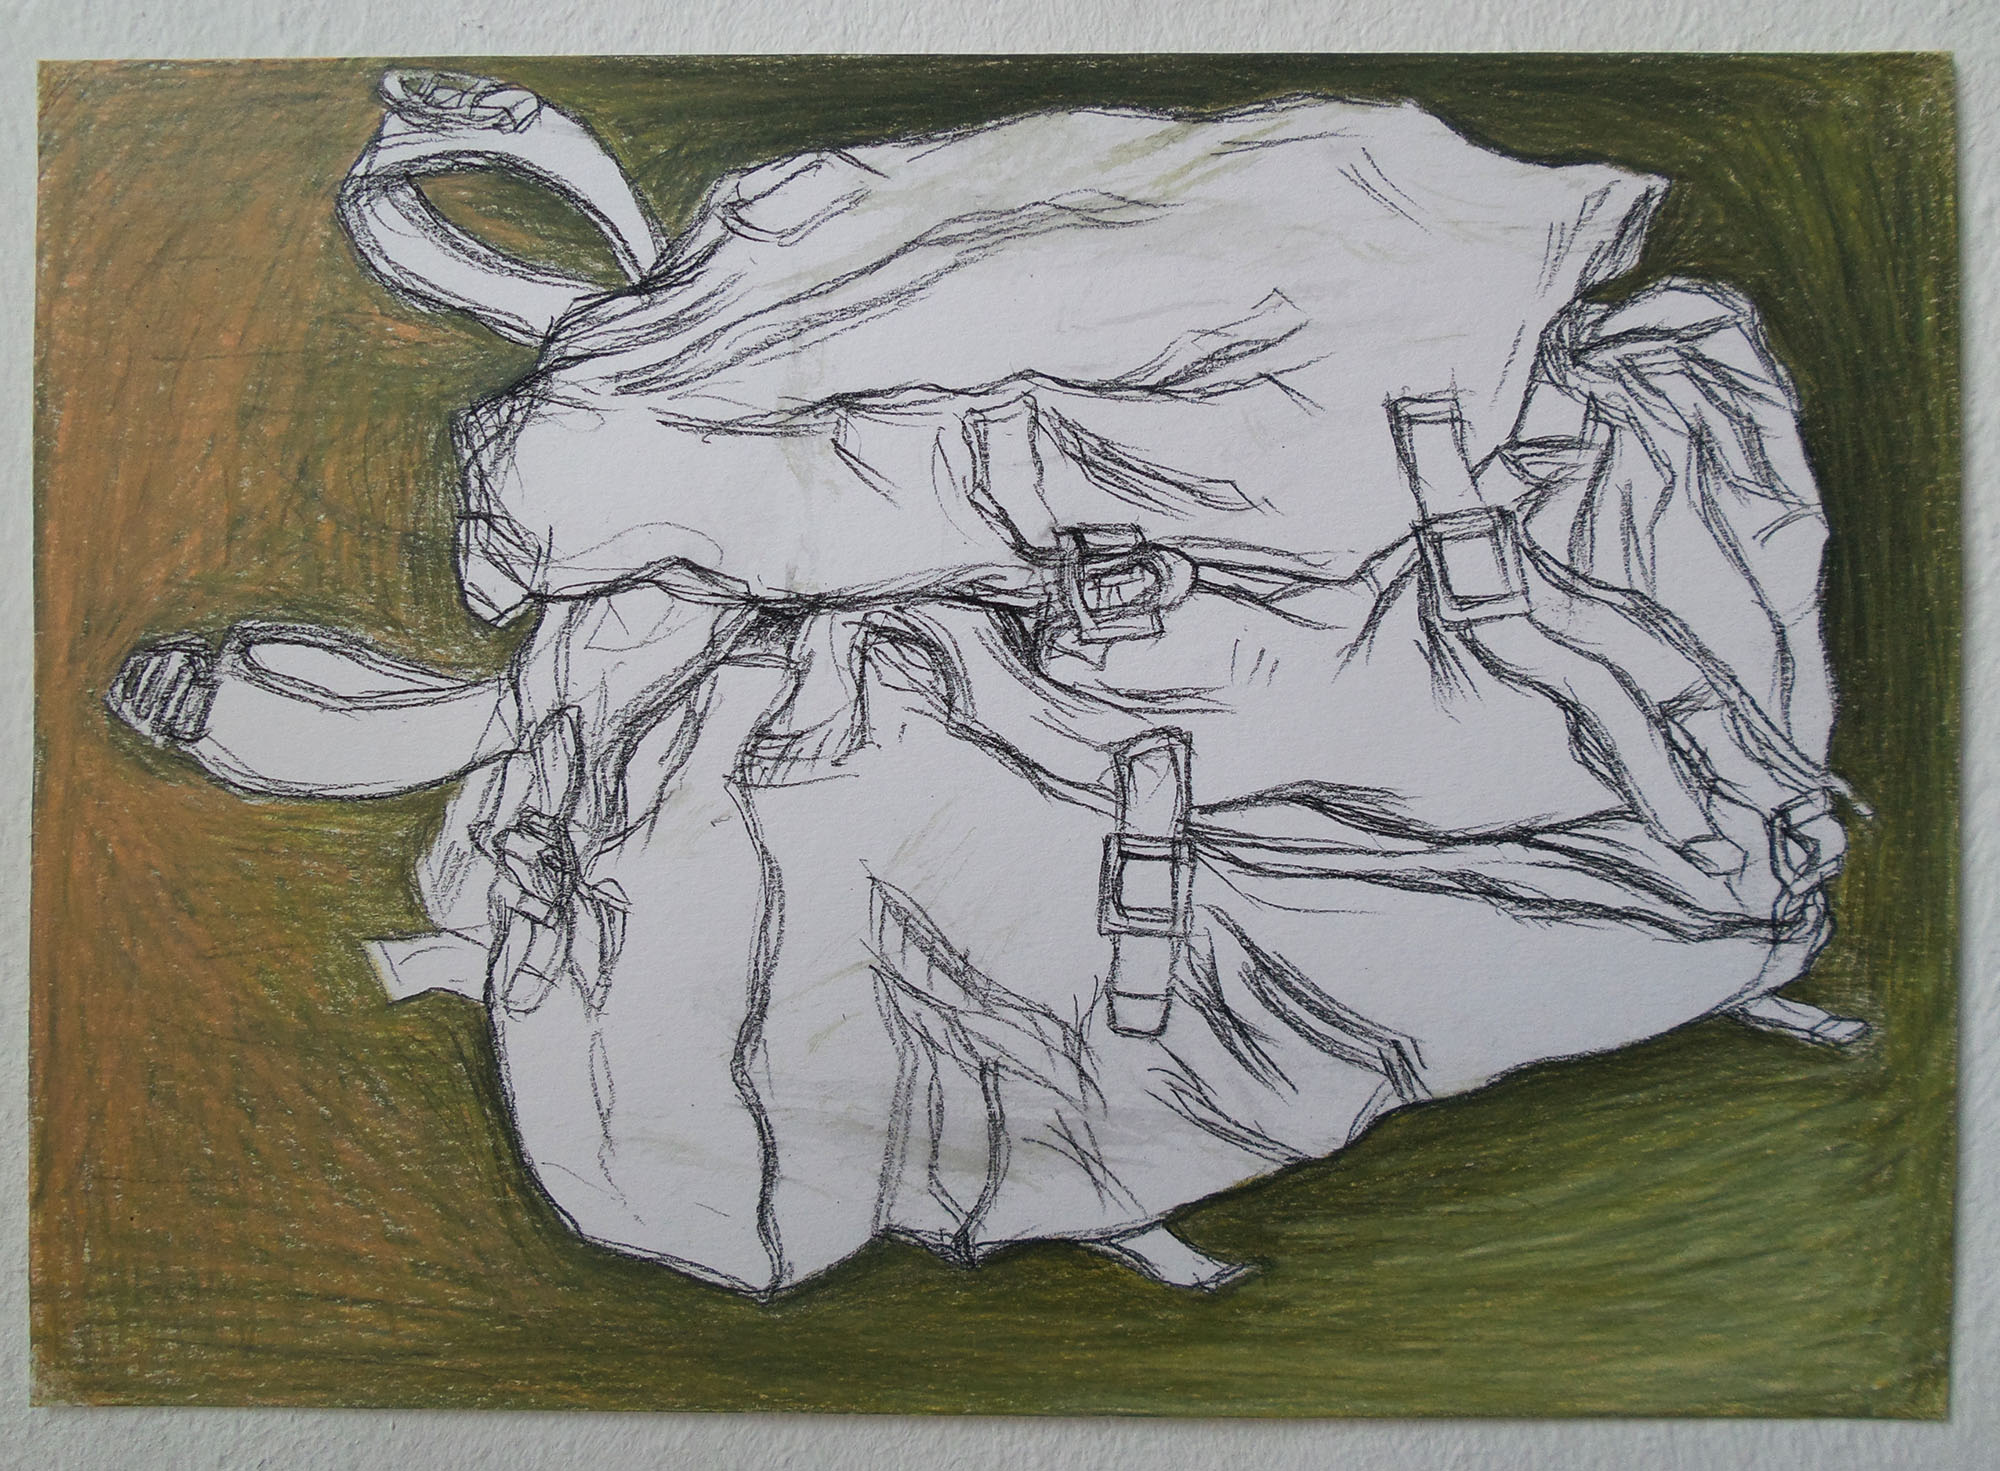 pencilcolour drawing green bag kleurpotlood tekening tas